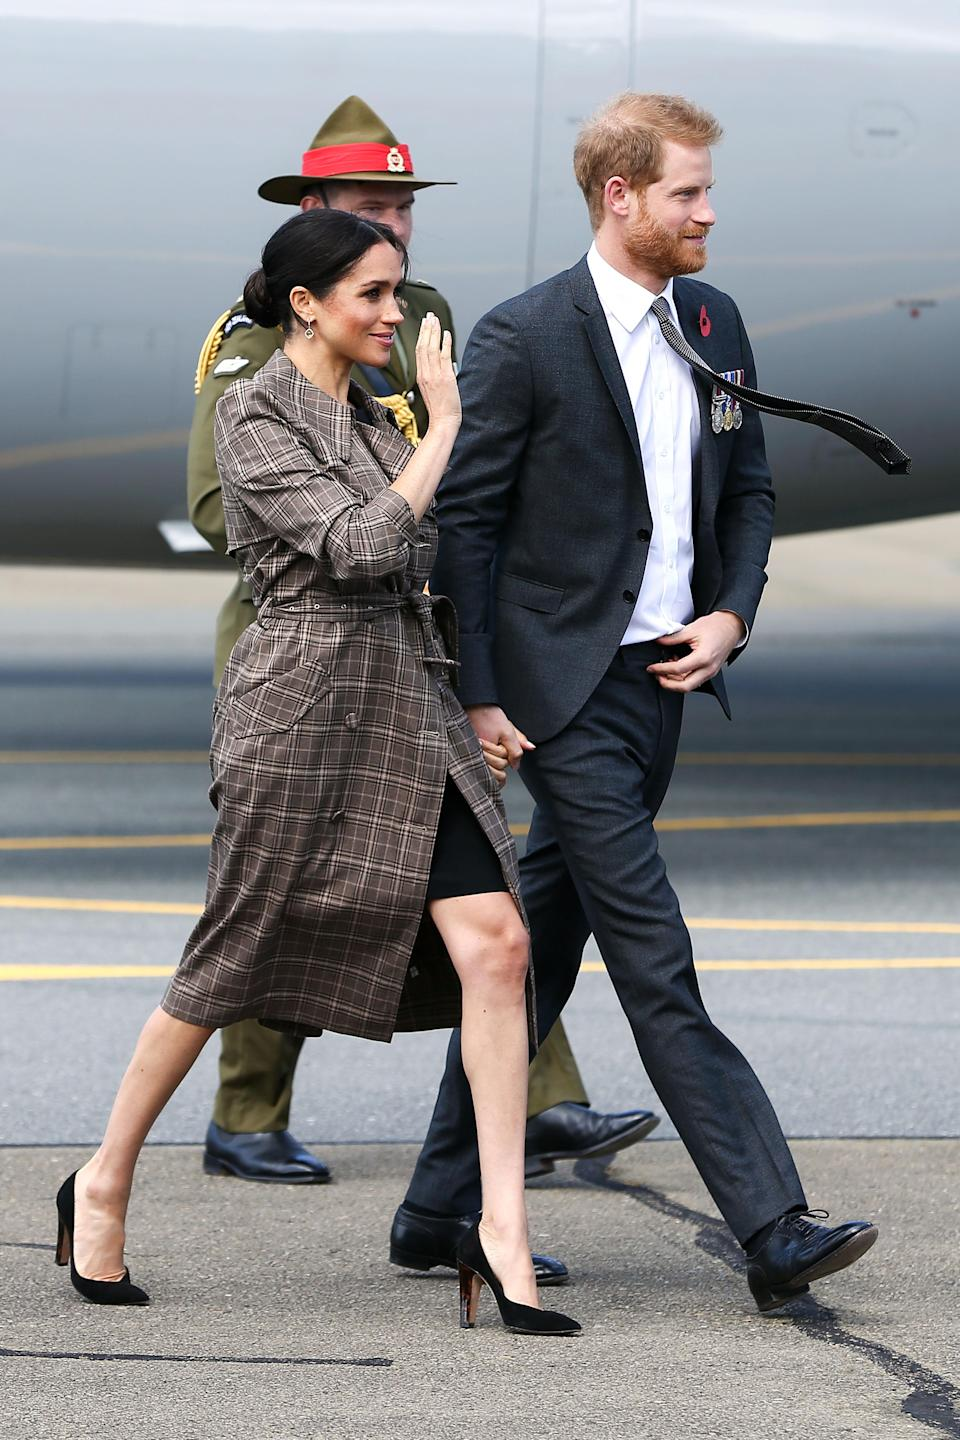 "<p>After a quick outfit change, the Duchess touched down in New Zealand wearing a £35 ASOS maternity <a href=""https://www.asos.com/asos-maternity/asos-design-maternity-wiggle-mini-dress/prd/10415635?clr=black&SearchQuery=asos%20design%20maternity%20wiggle%20dress&gridcolumn=1&gridrow=1&gridsize=4&pge=1&pgesize=72&totalstyles=4"" rel=""nofollow noopener"" target=""_blank"" data-ylk=""slk:dress"" class=""link rapid-noclick-resp"">dress</a> with a Karen Walker plaid trench to finish the ensemble. <em>[Photo: Getty]</em> </p>"